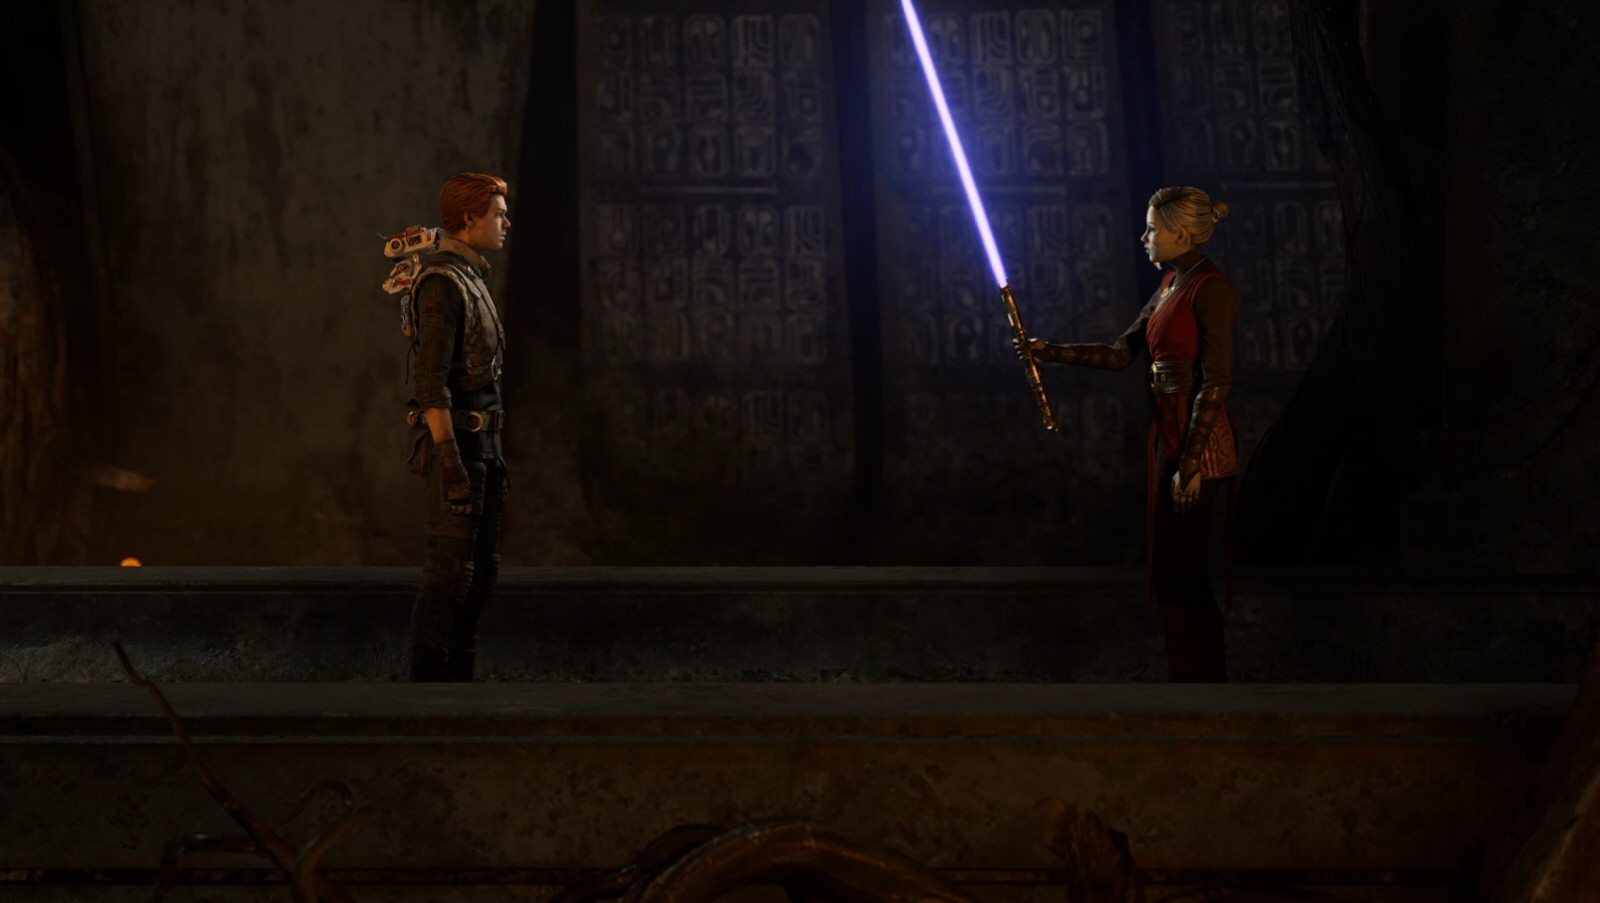 So... I realize lightsabers are fun and everything but... I'm gonna need that back.